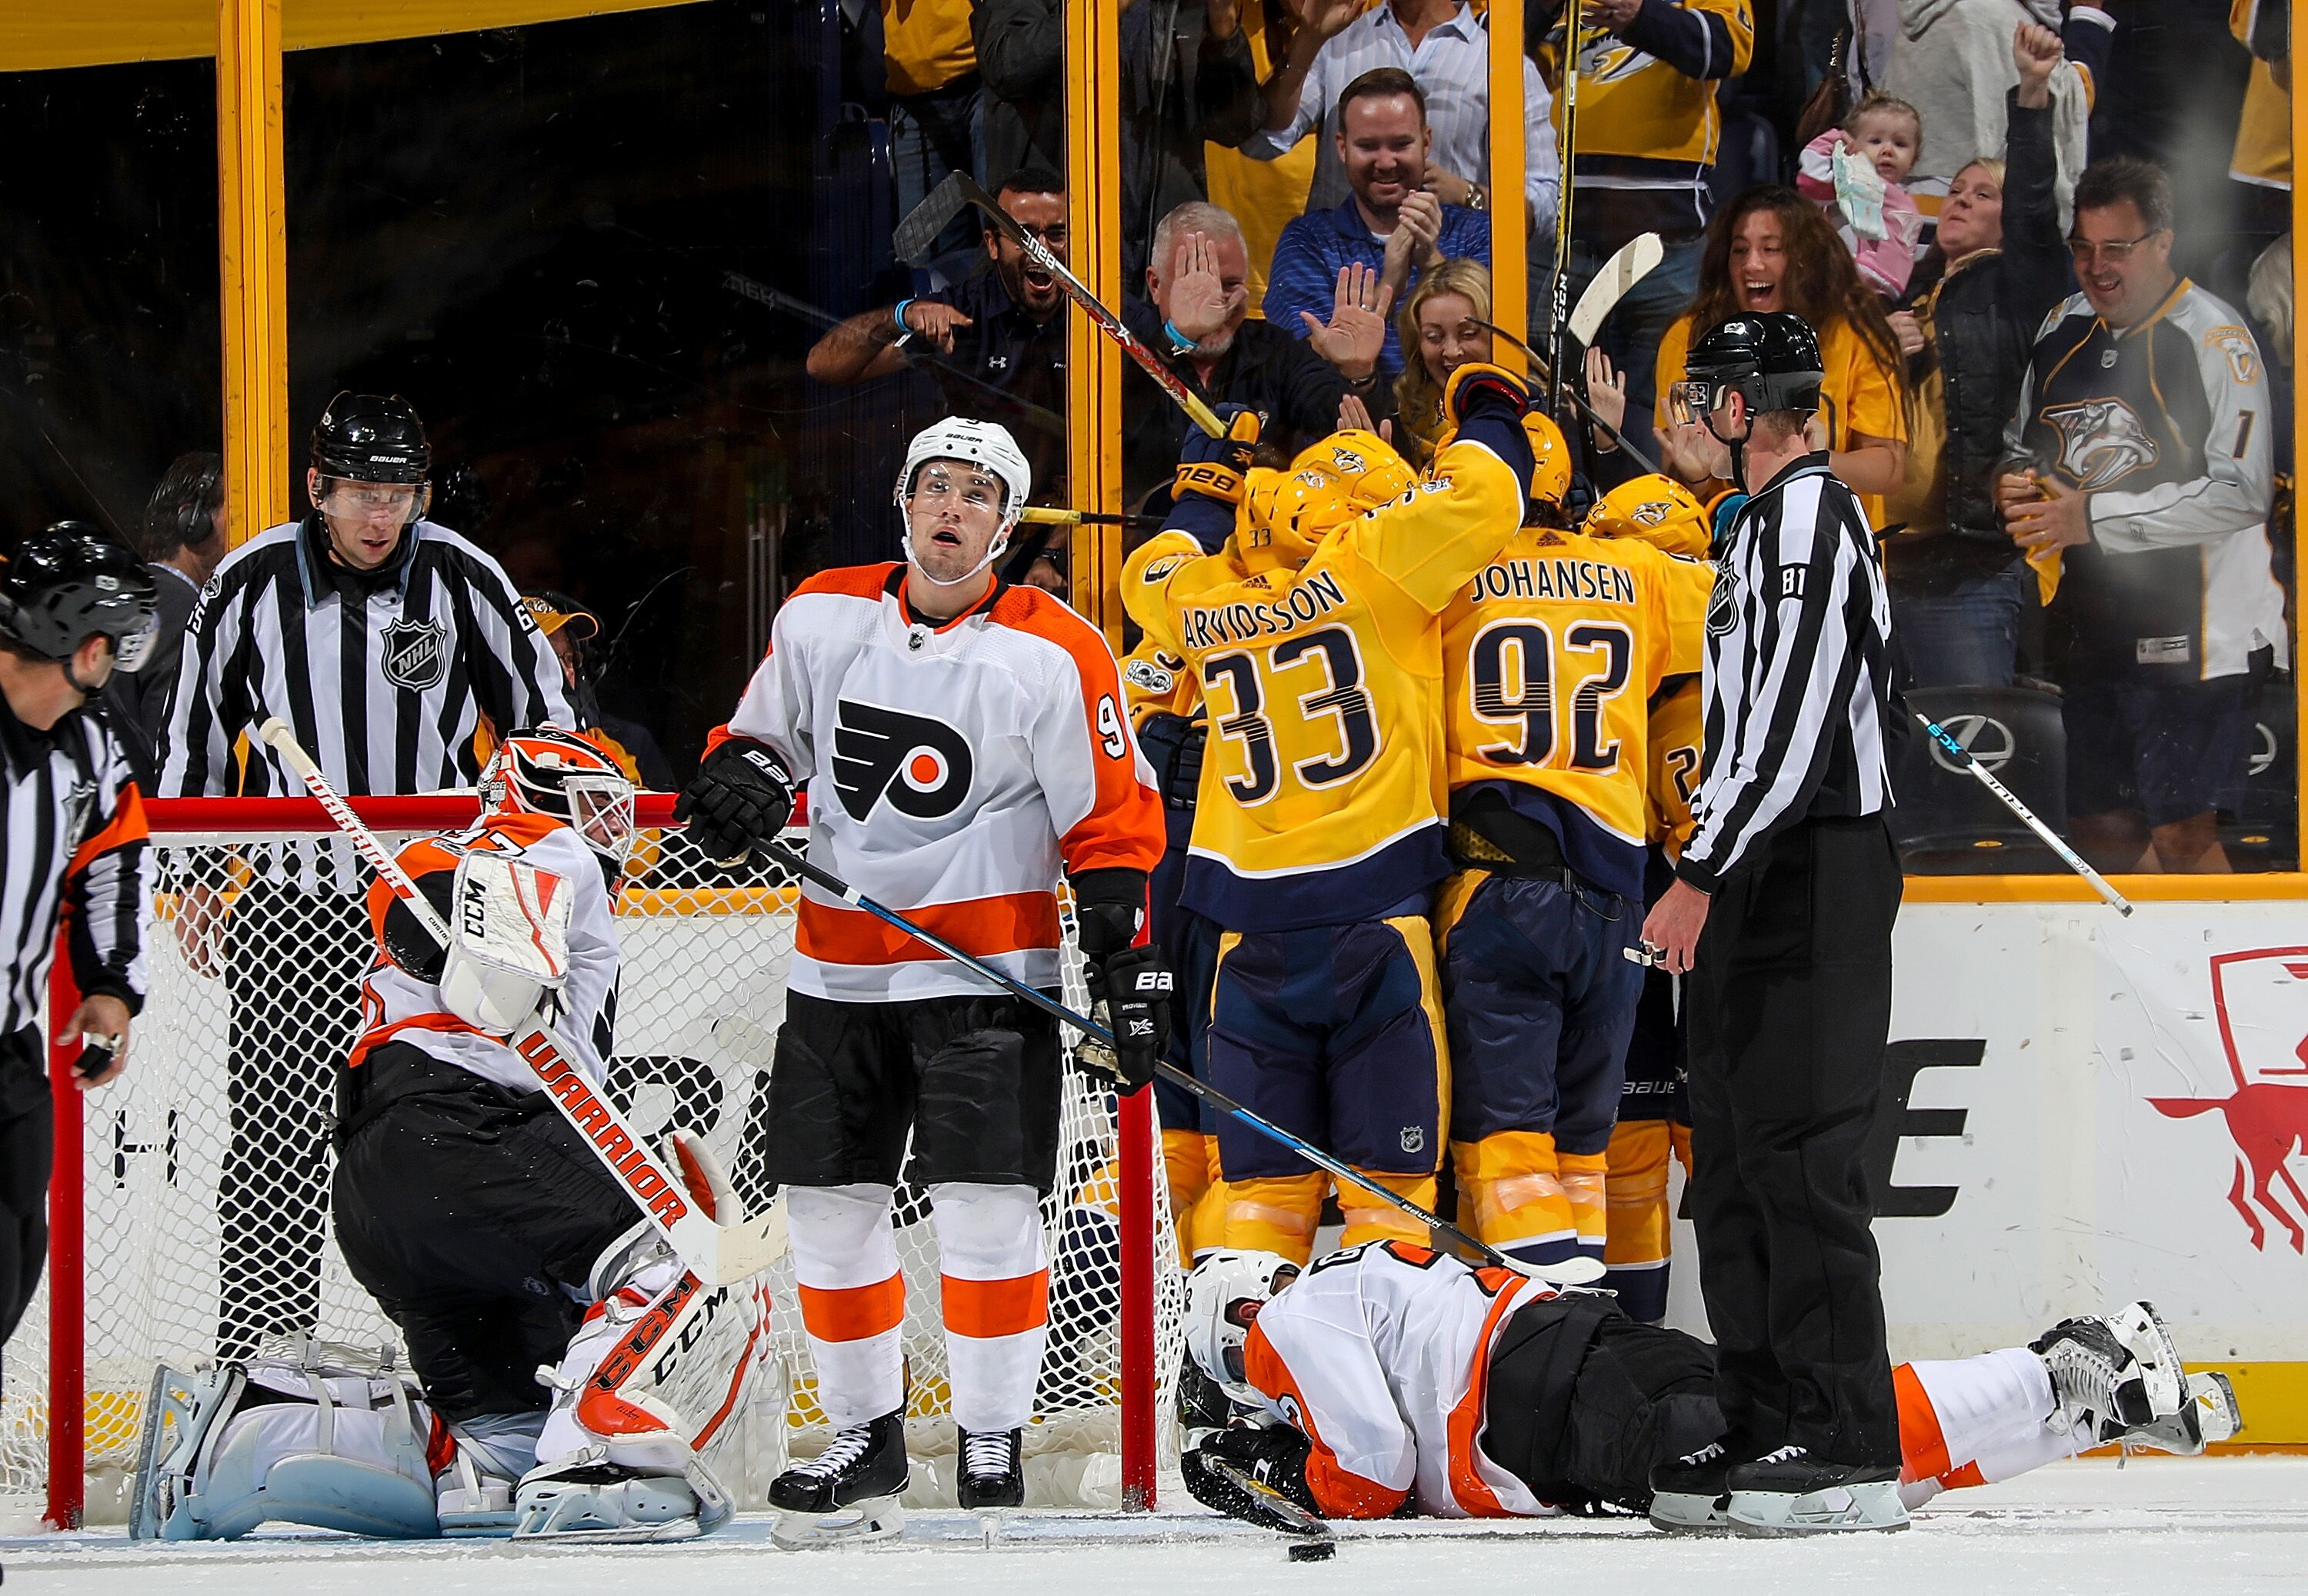 Nashville Predators  Flyers Looking For Revenge In Last Meeting 44415f79ade9